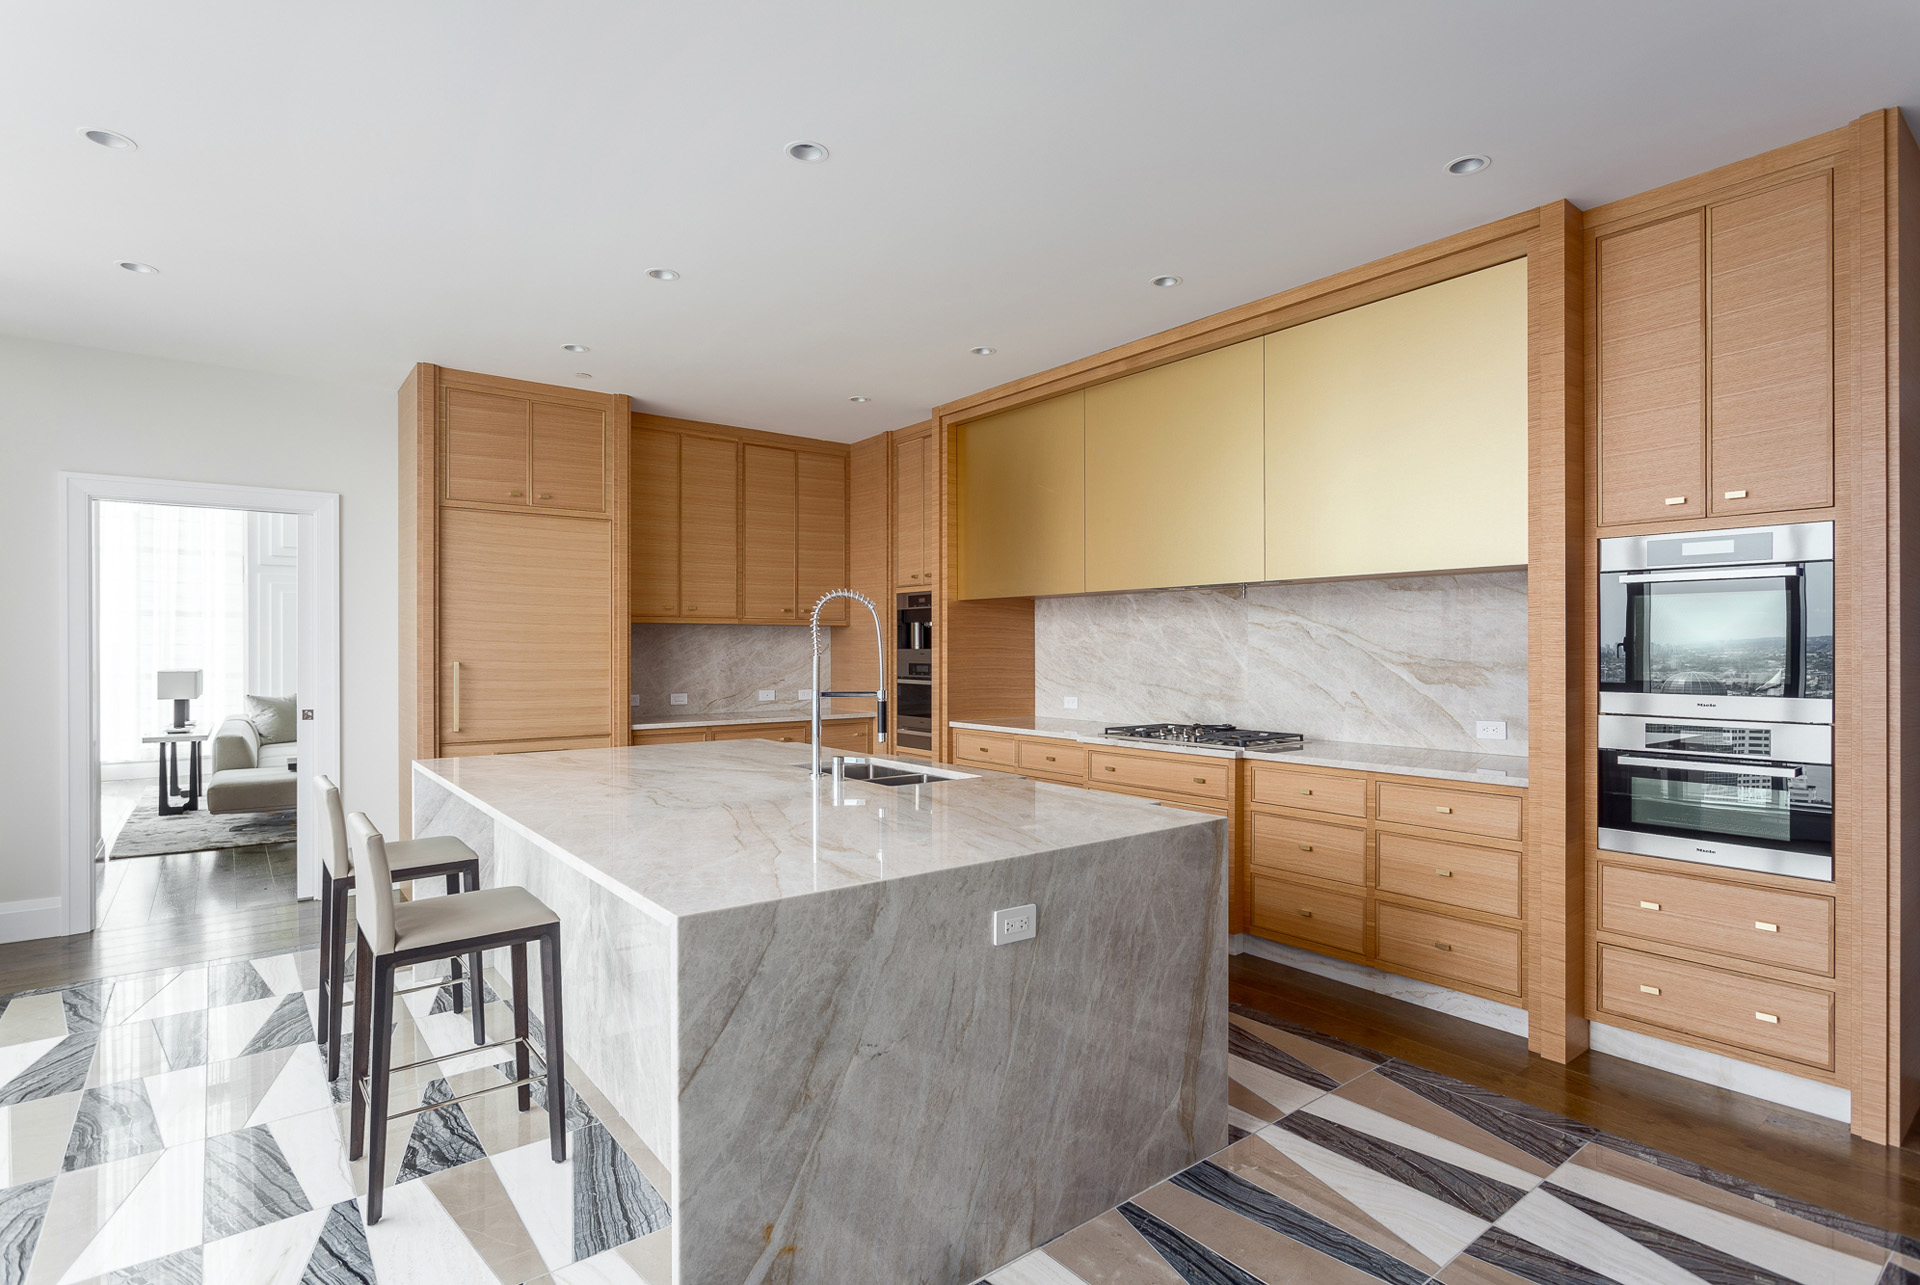 ensure kitchen so abode most you magazine spaces will and palazzo working the your materials one a get of designer right it alongside home showcase important essential is in